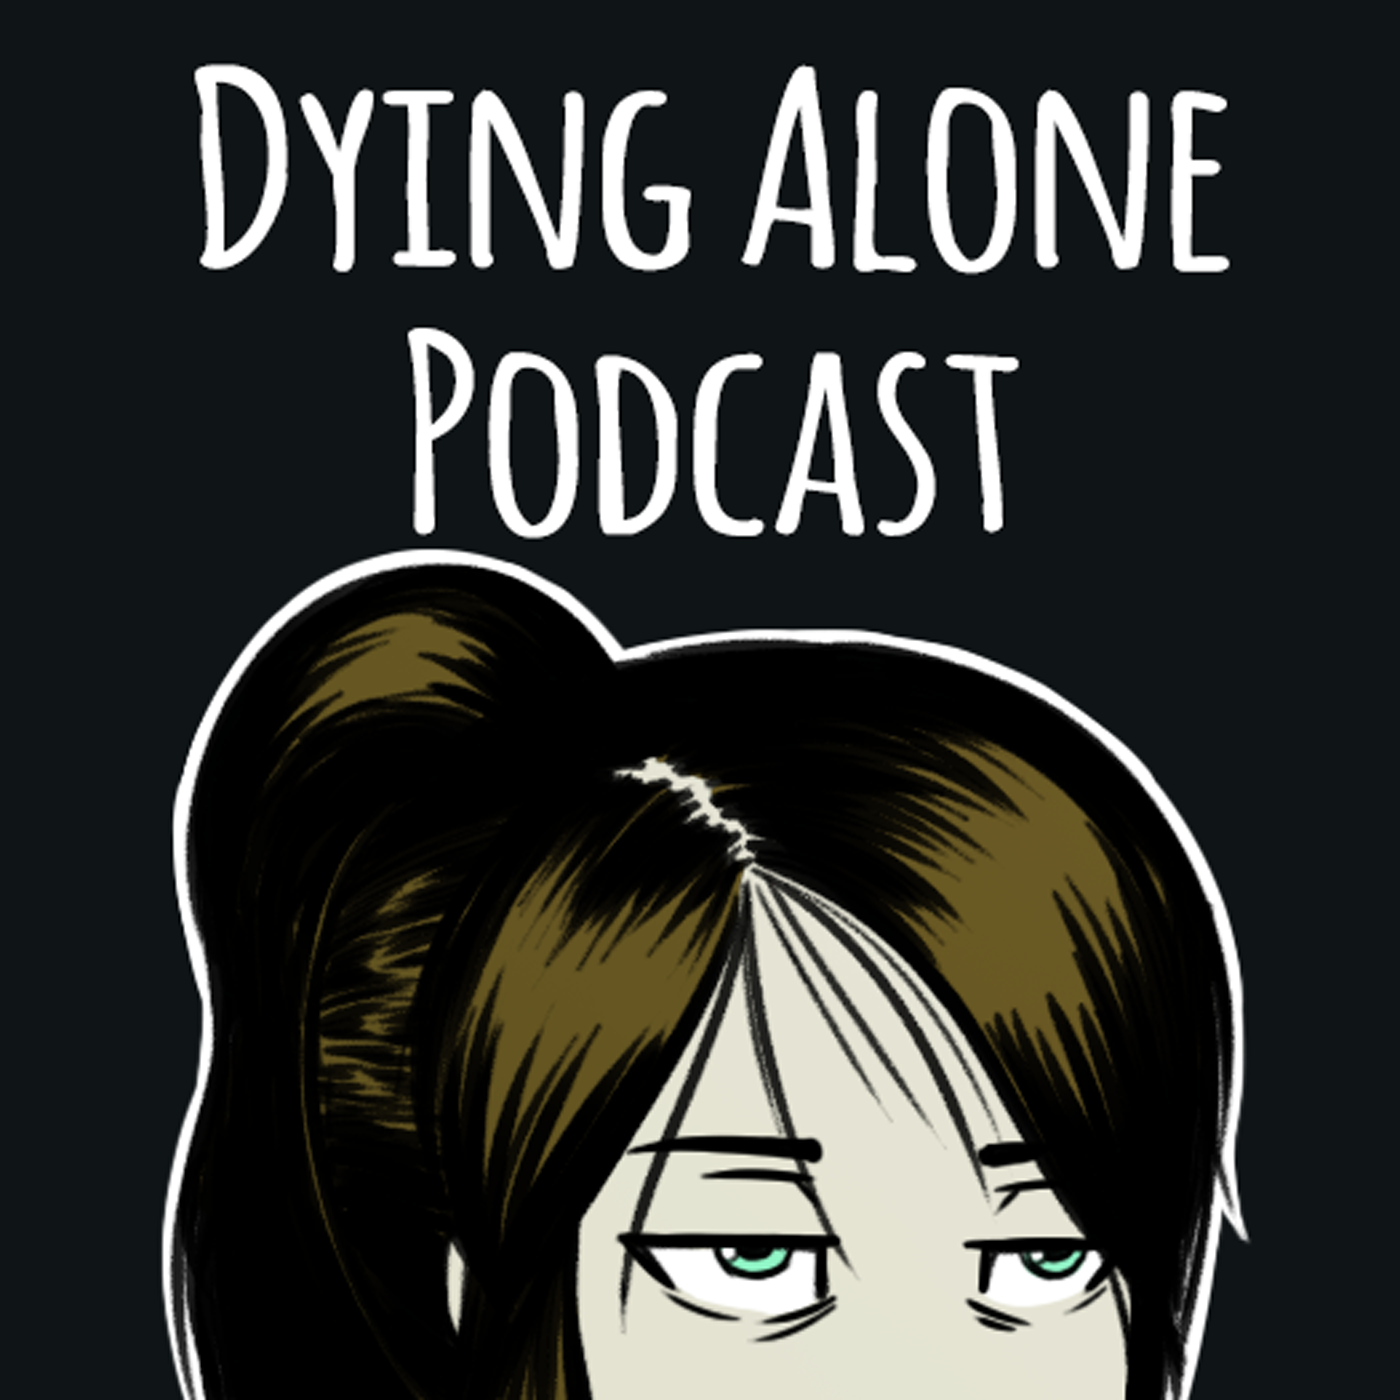 The Dying Alone Podcast